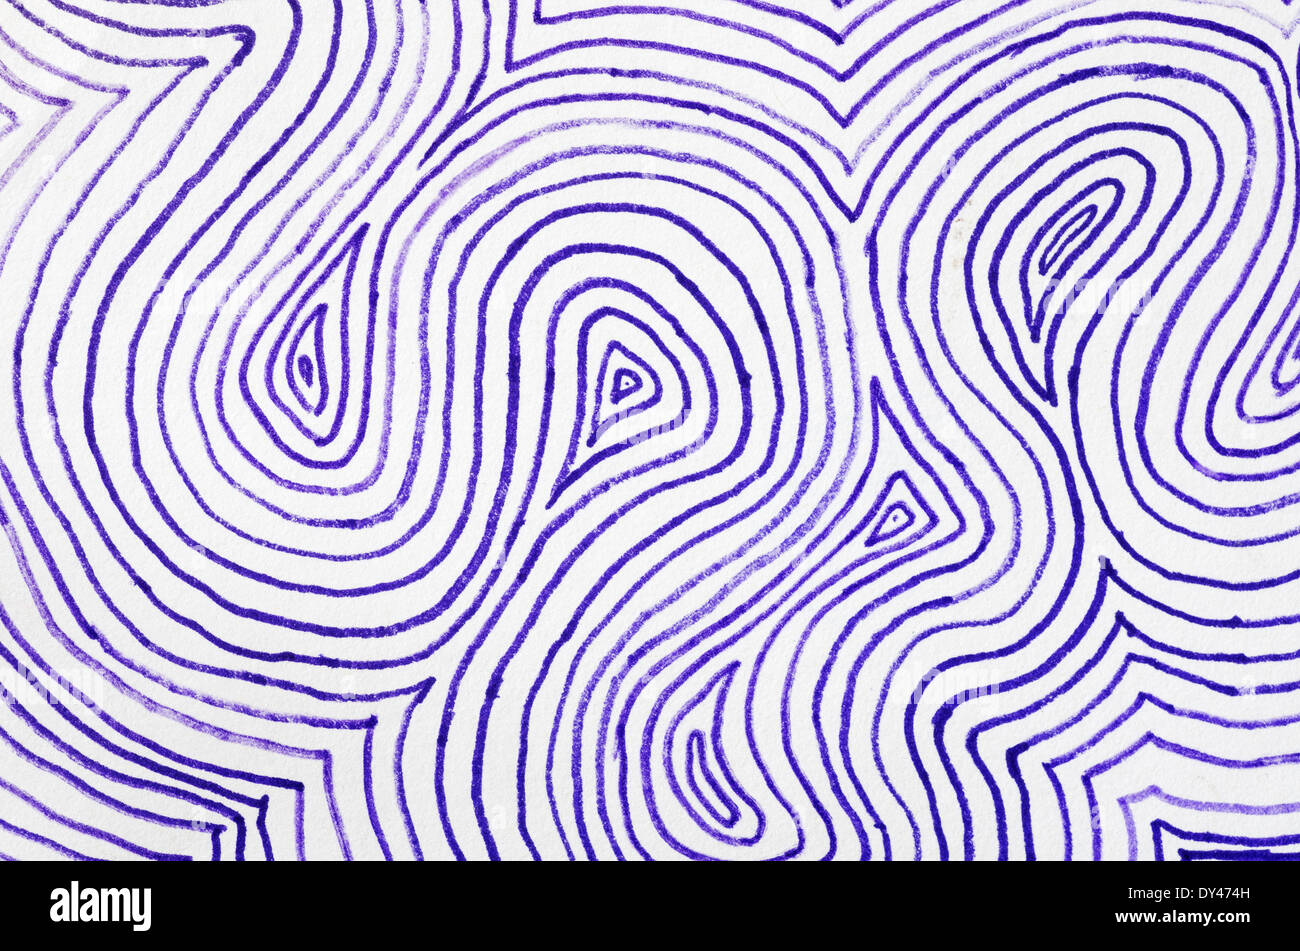 concentric curved purple lines drawn on paper by hand - Stock Image